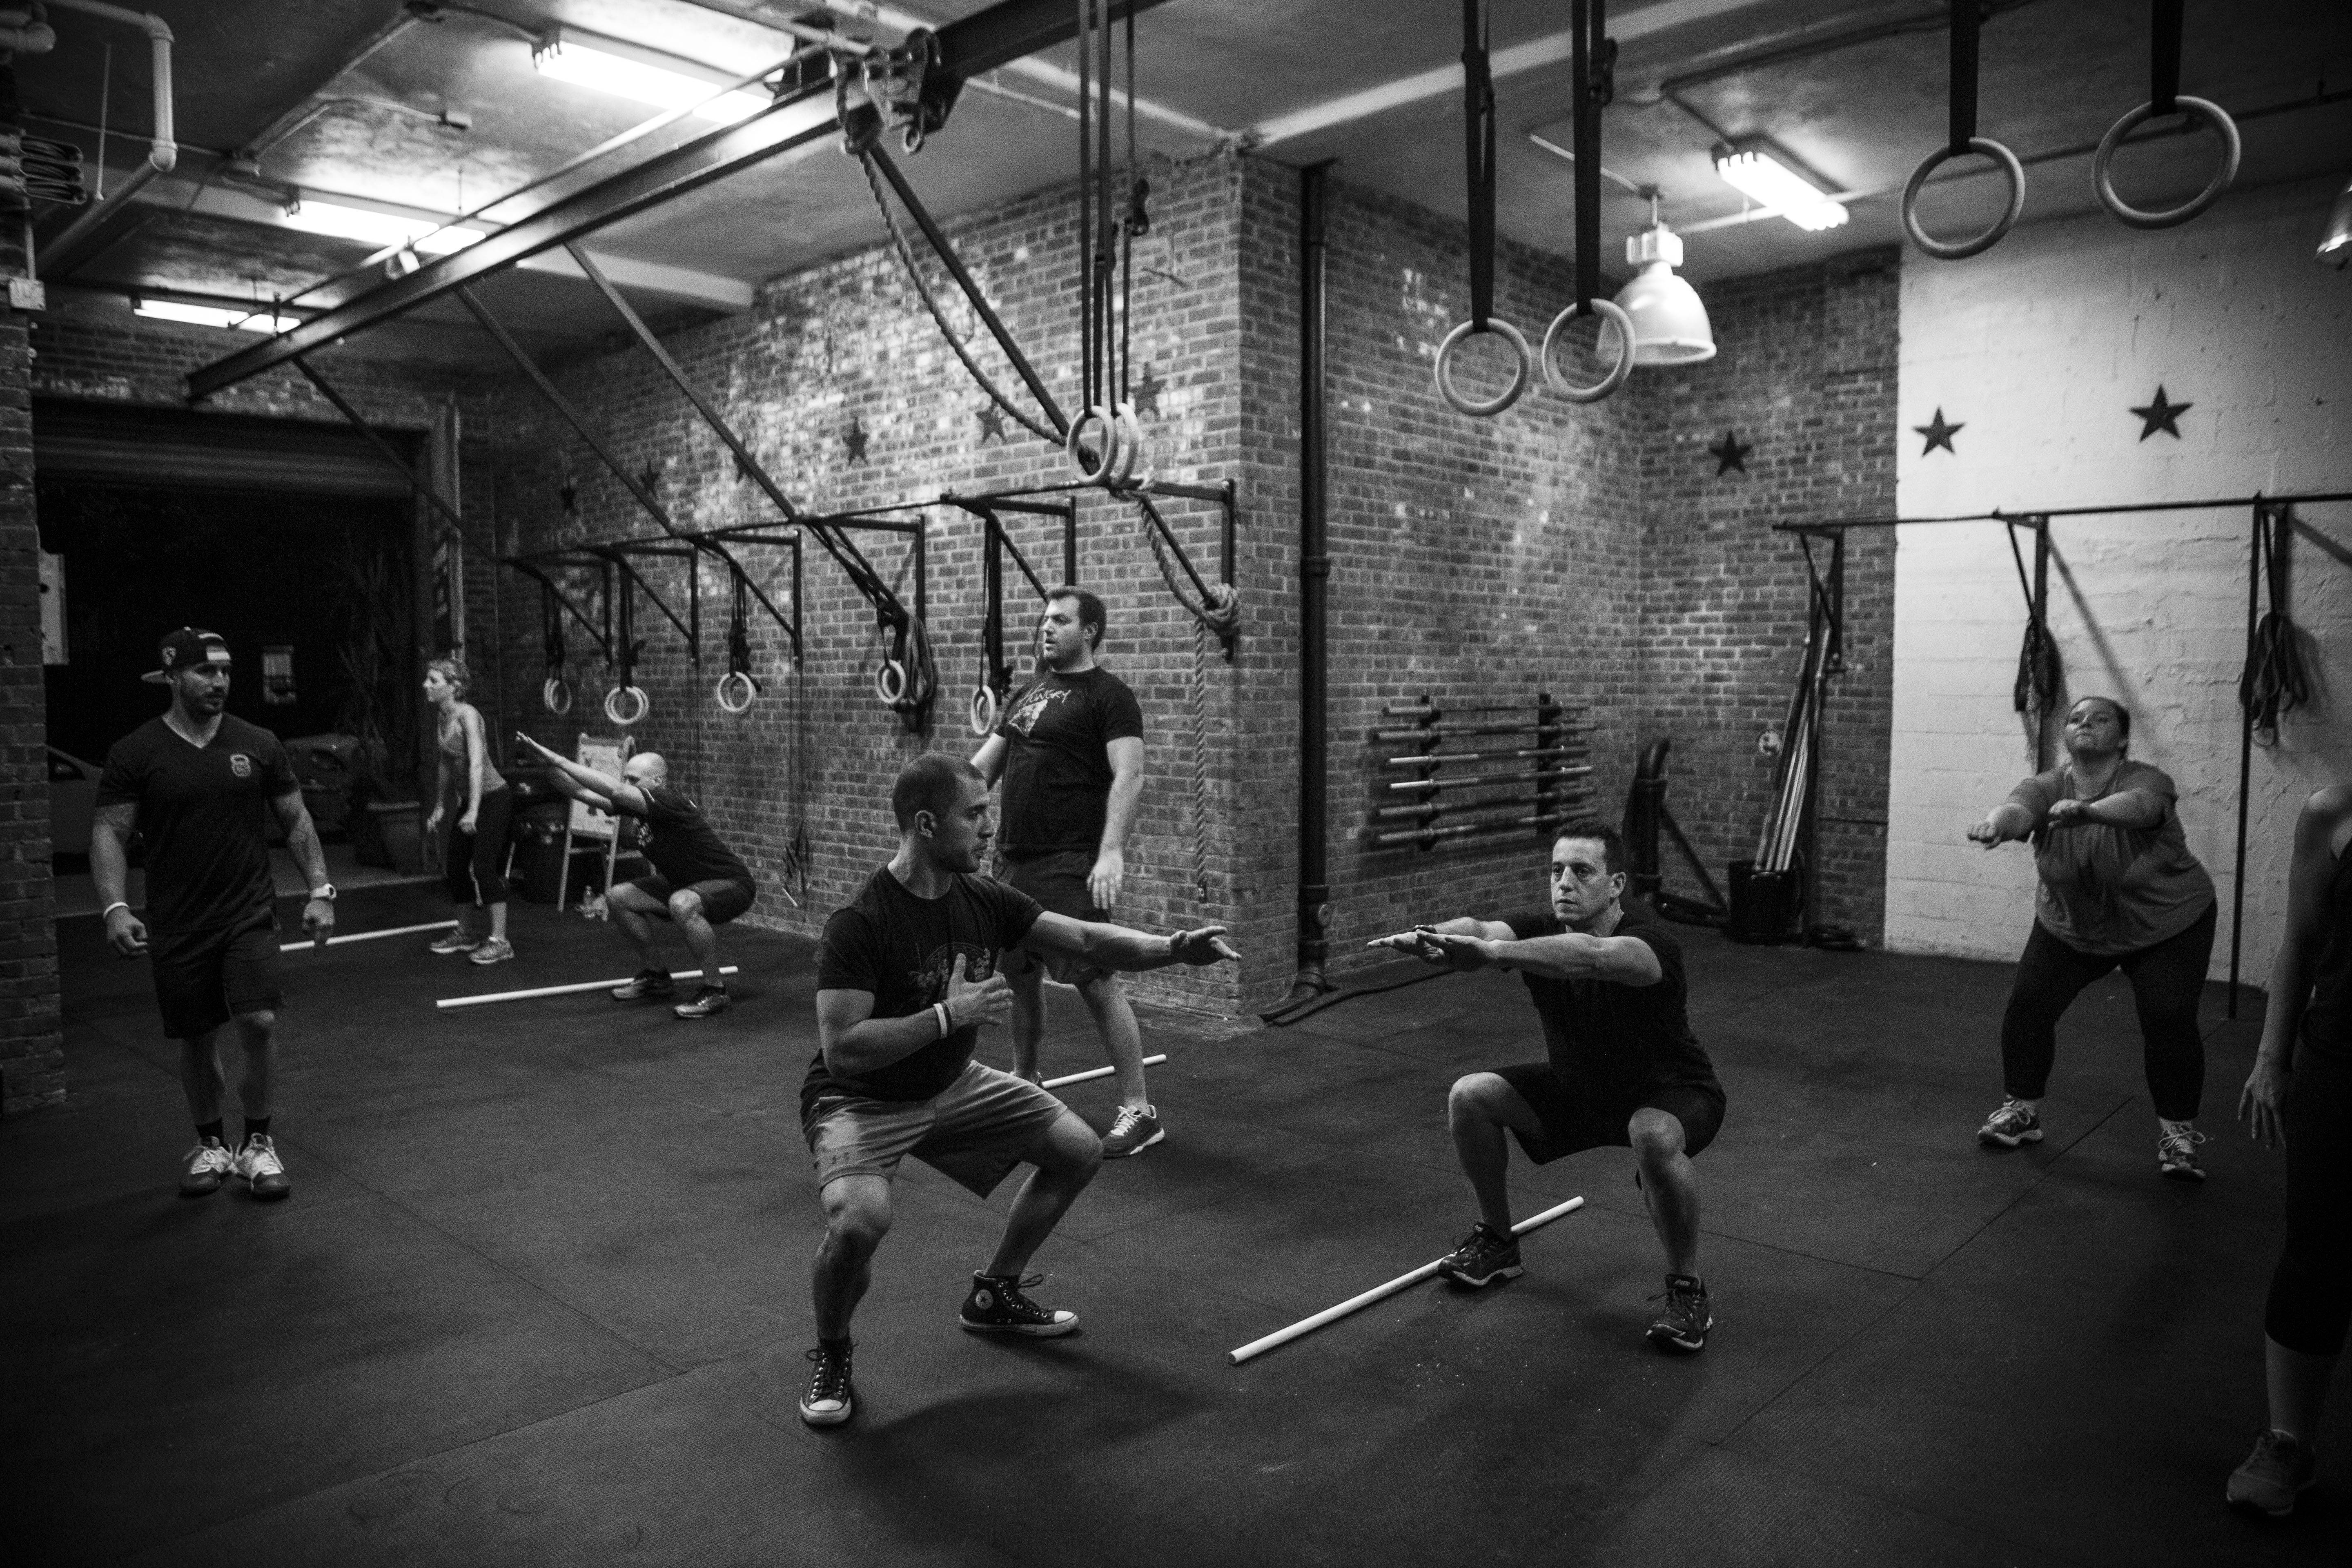 Crossfit Wallpapers HD 5760x3840